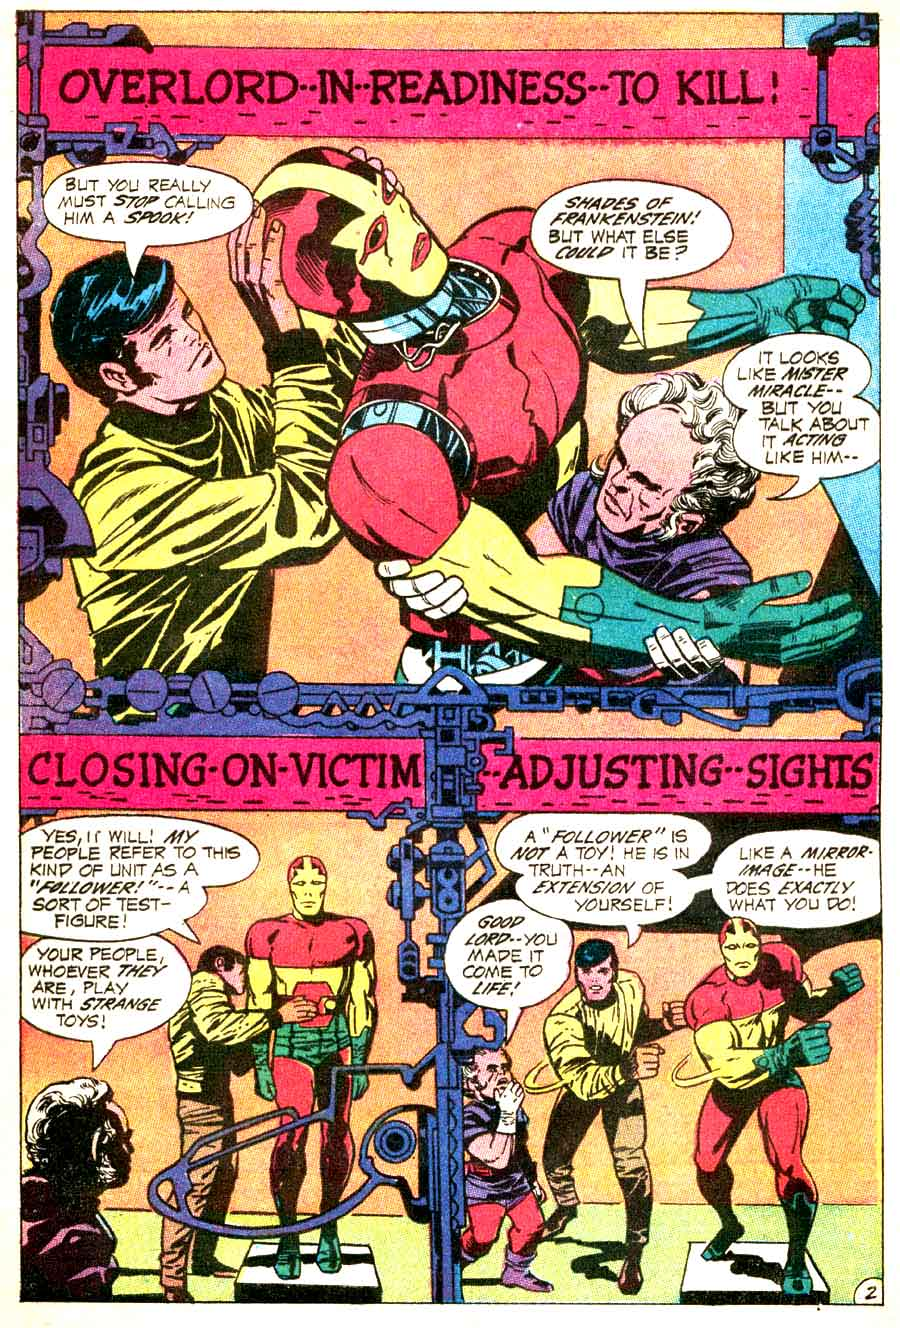 Mister Miracle v1 #2 dc 1970s bronze age comic book page art by Jack Kirby